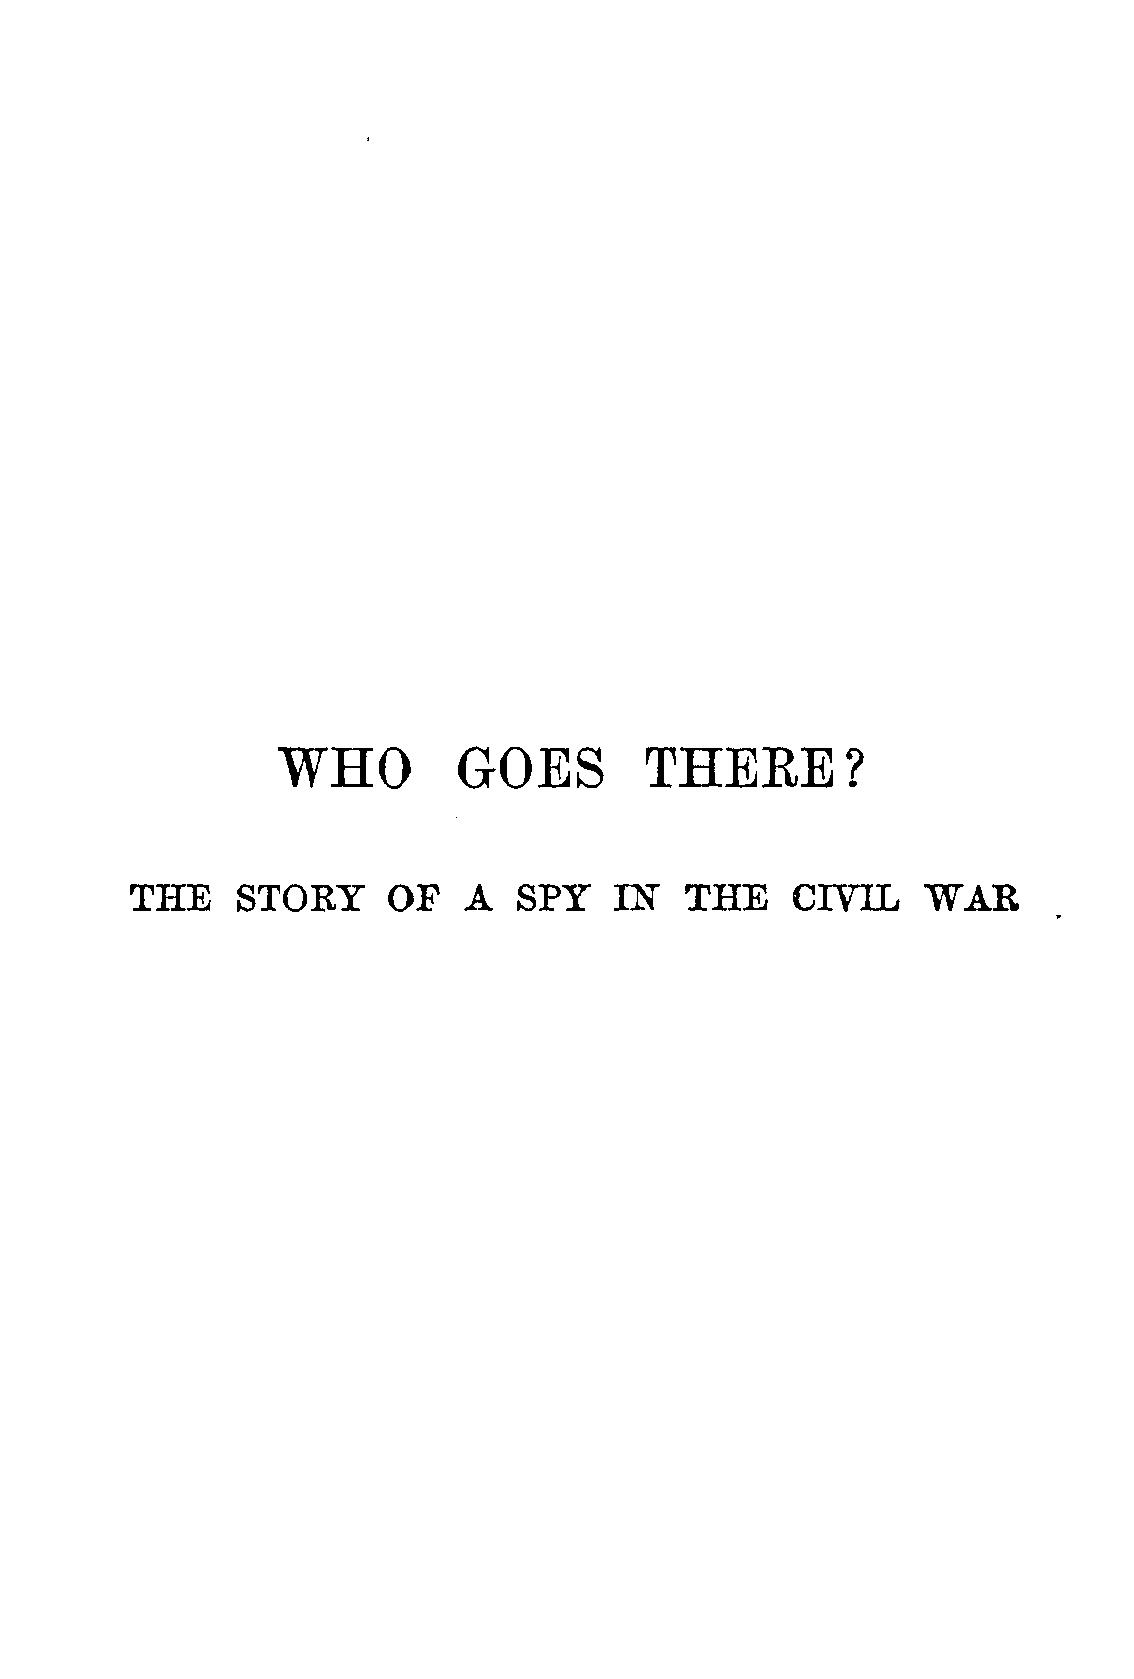 B. K. Benson - The Story Of A Spy In The Civil War